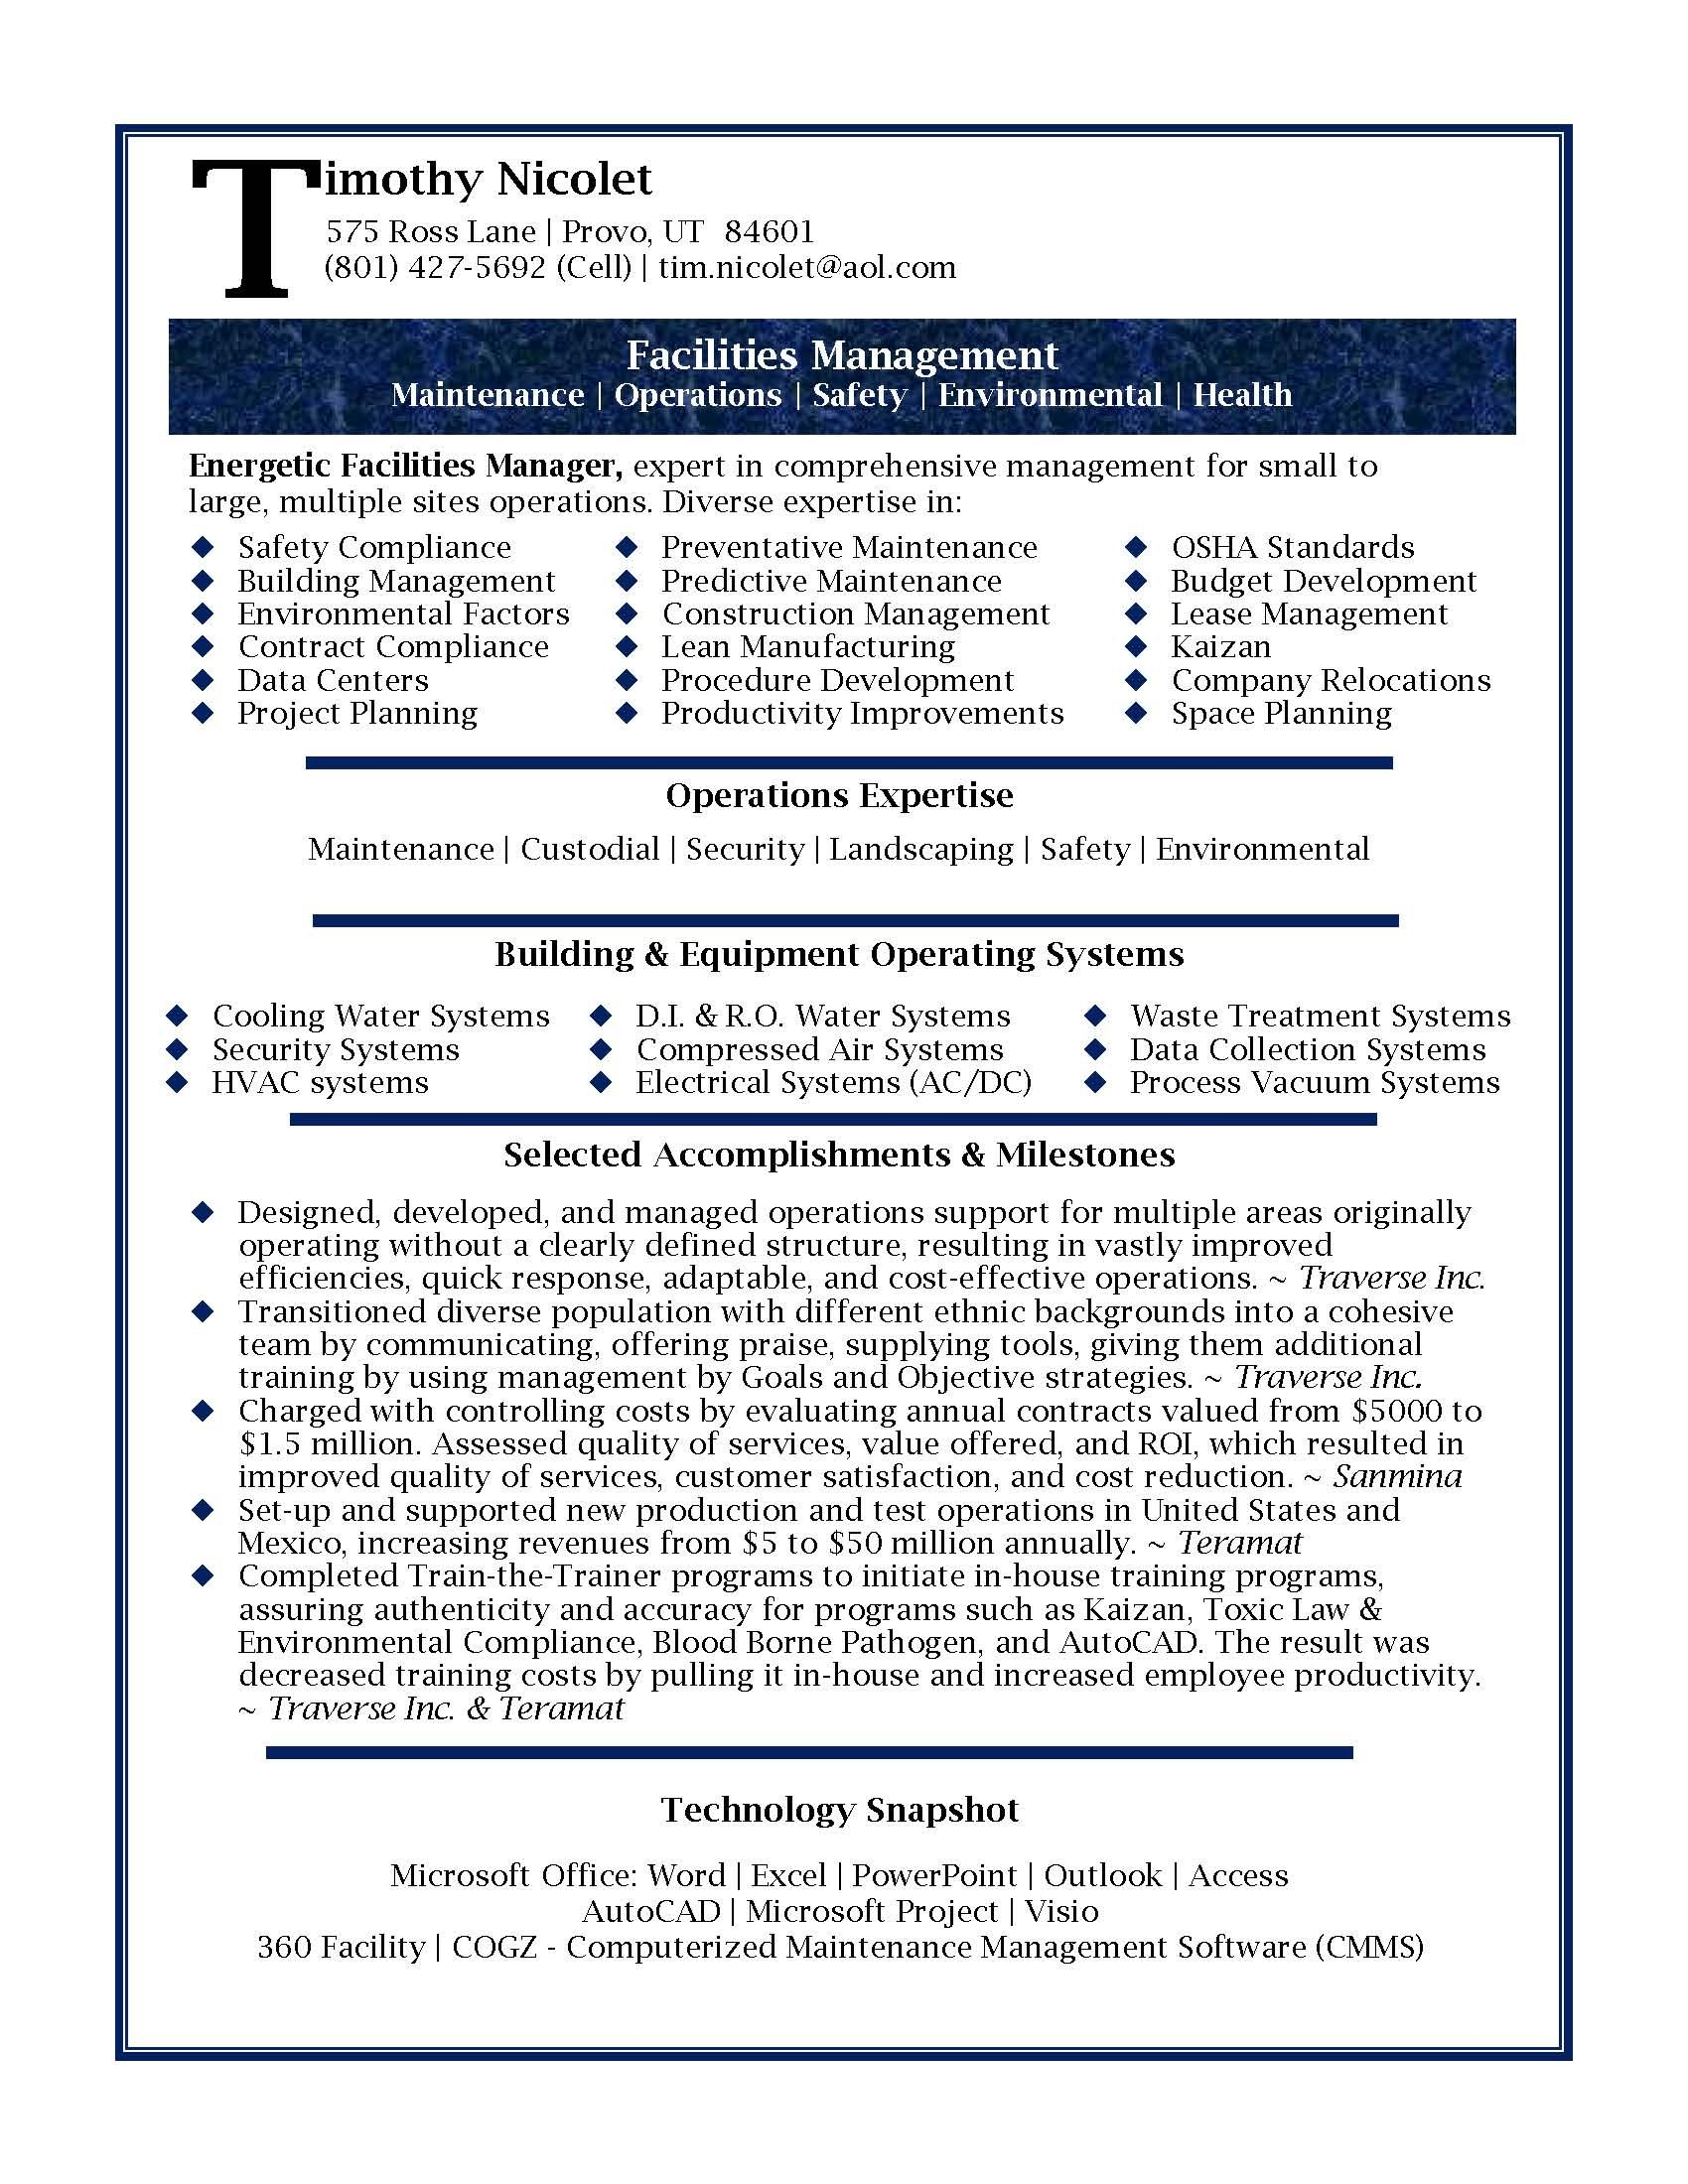 executive management resume examples - Top 10 Resume Examples